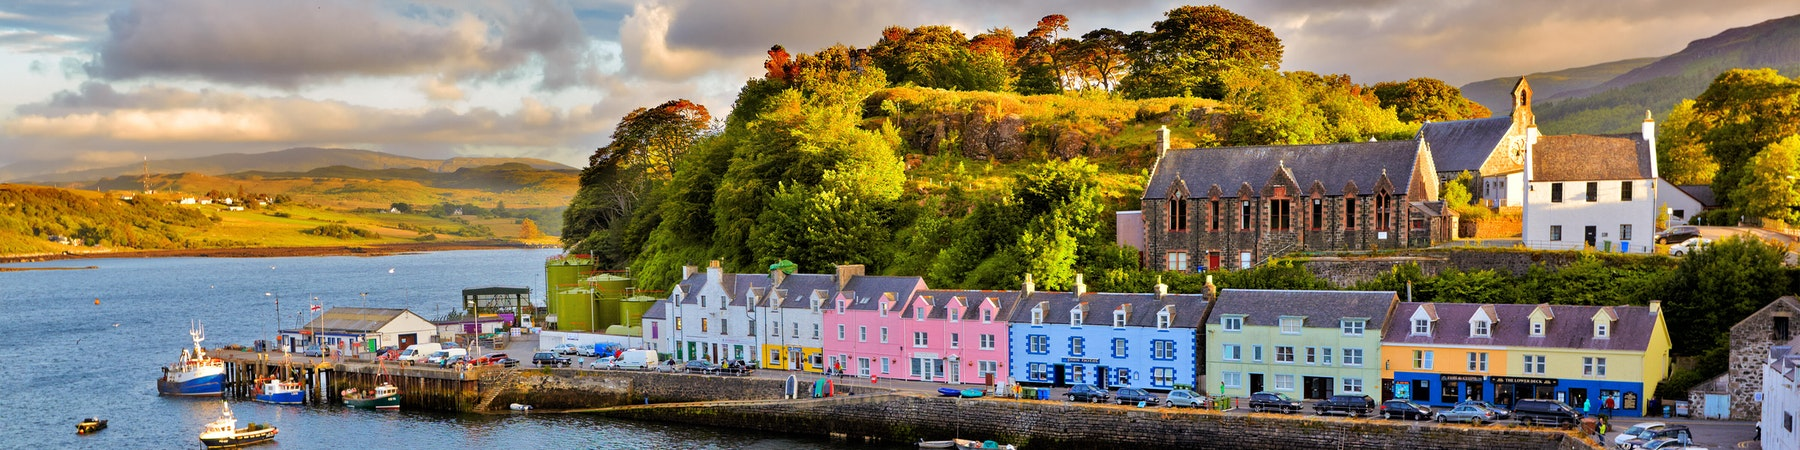 Portree, The isle of skye sees multicoloured homes on the seafront with high green mountains in the background.